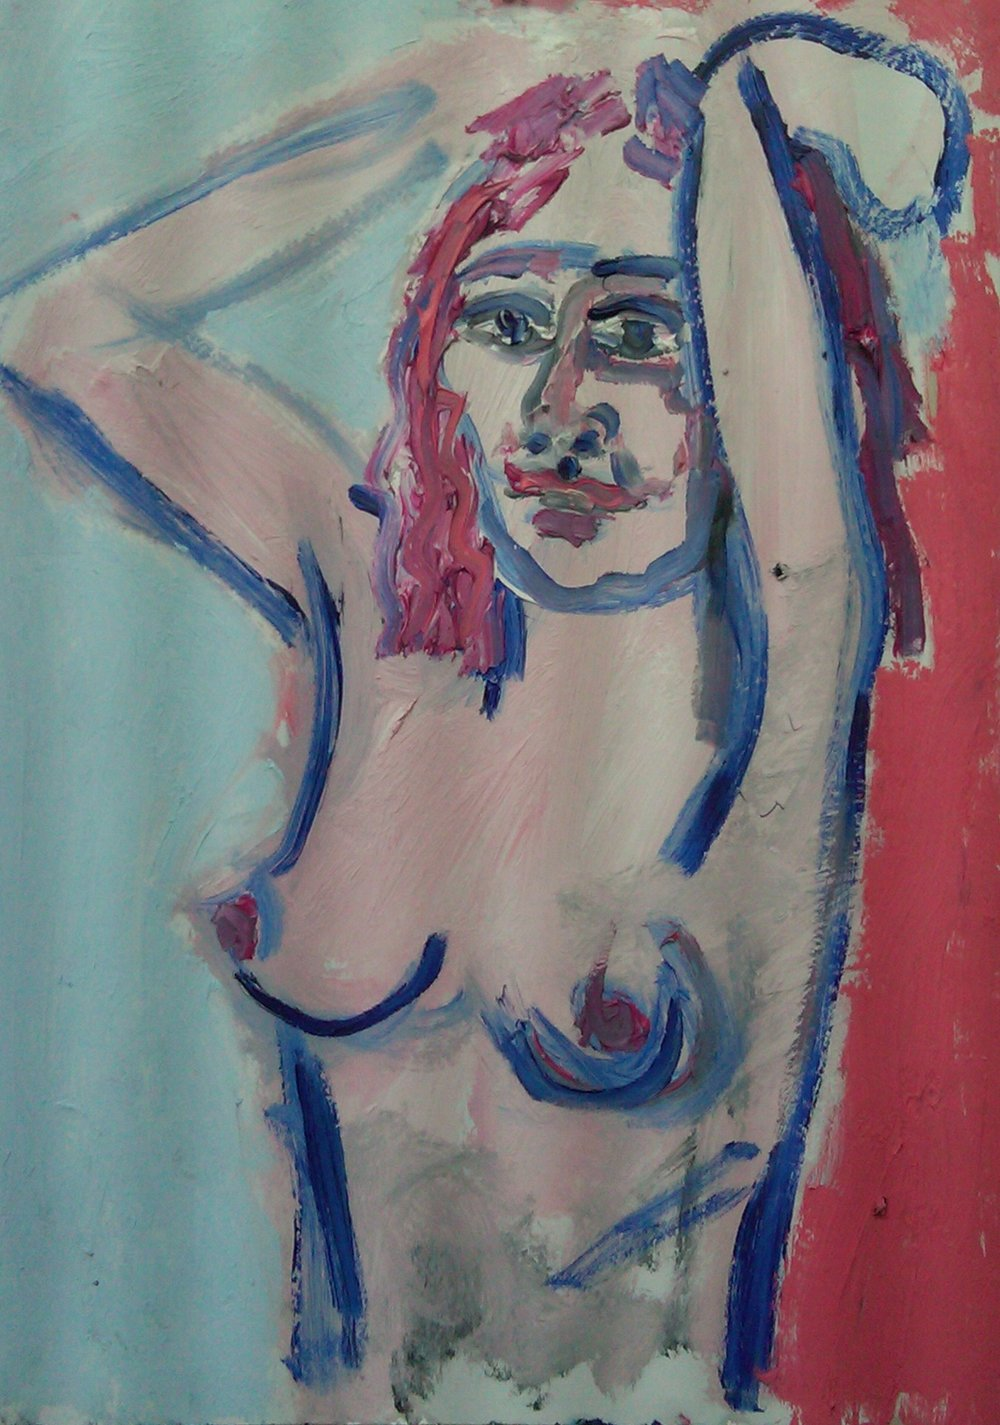 Samantha Dancing - Oil/charcoal on paper 24